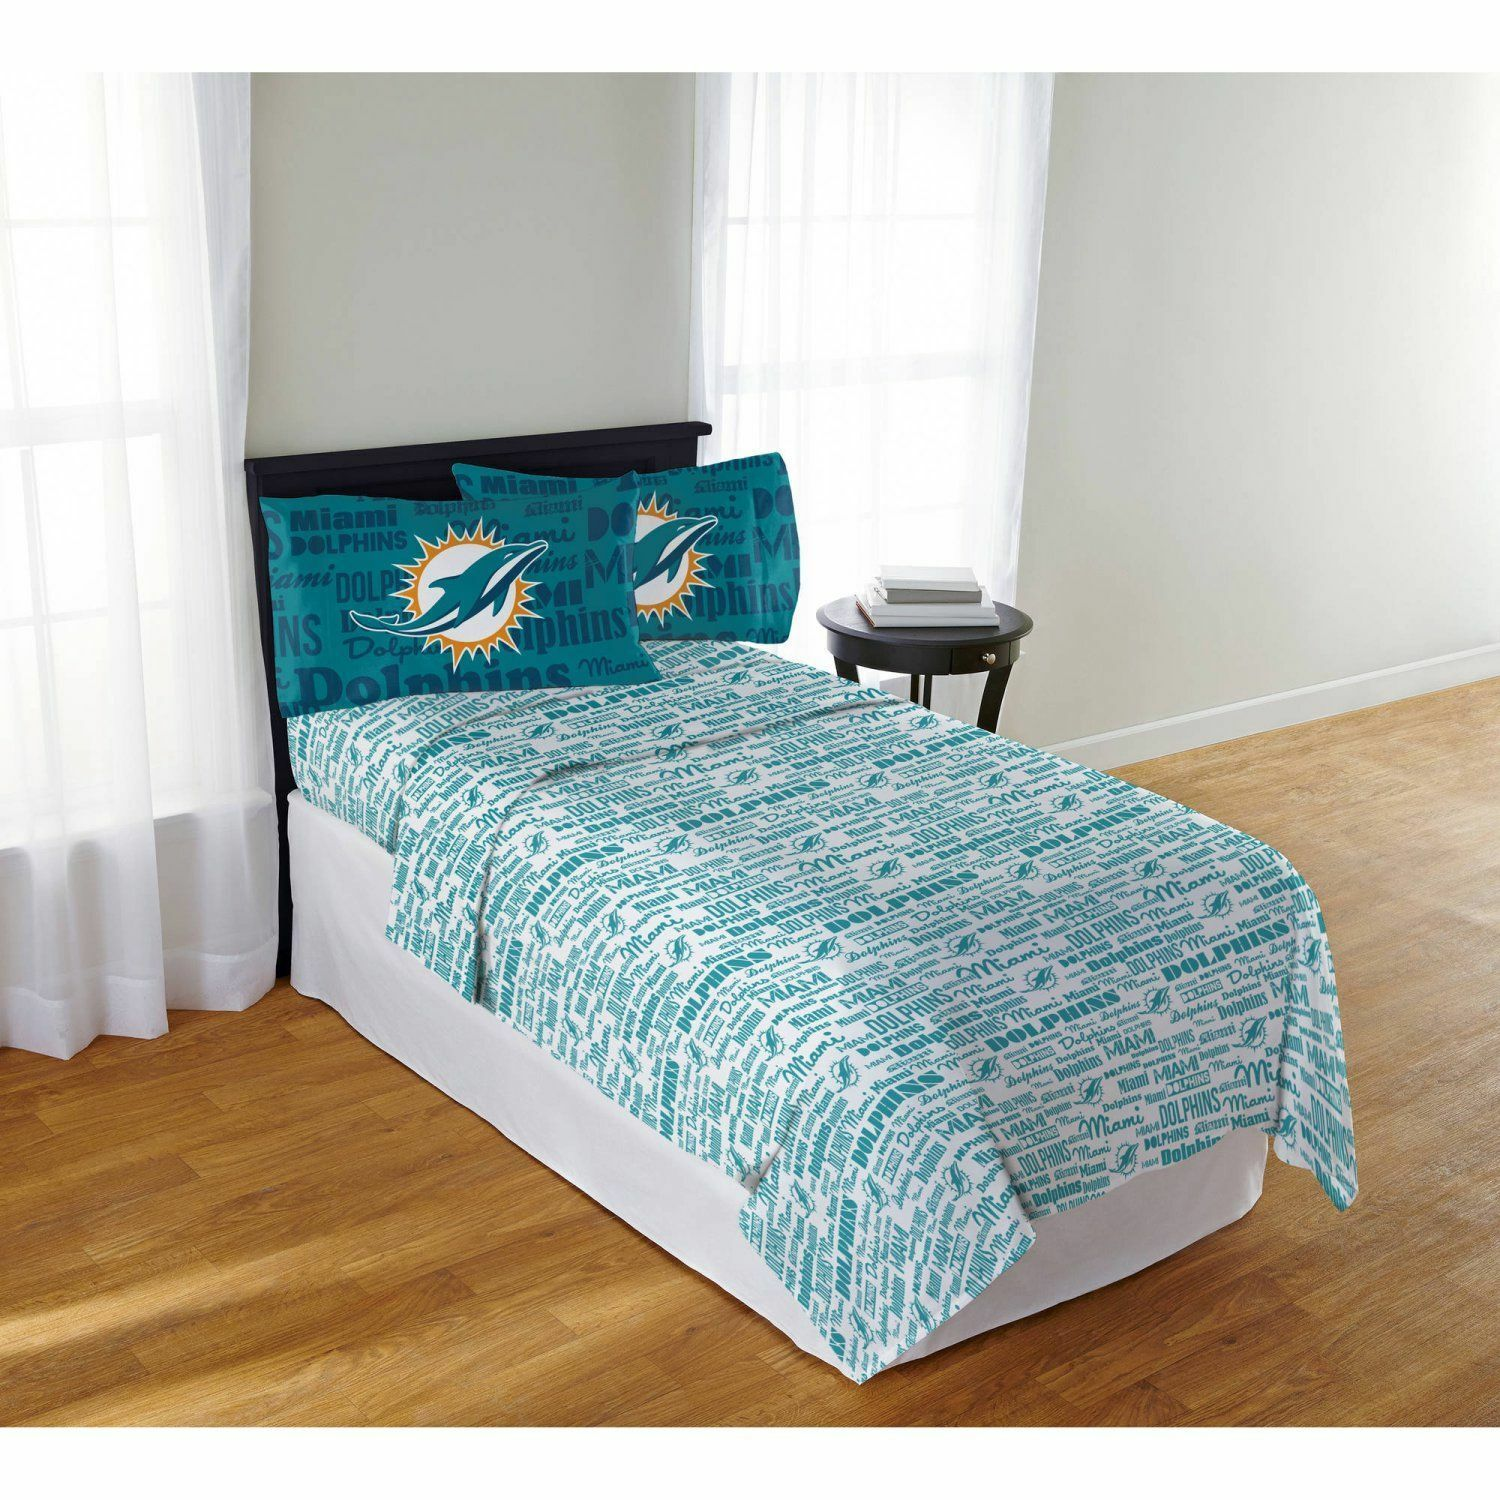 Miami Dolphins Sheet Set NFL Full Bed Fitted Flat Sheets Boys Team Bedding